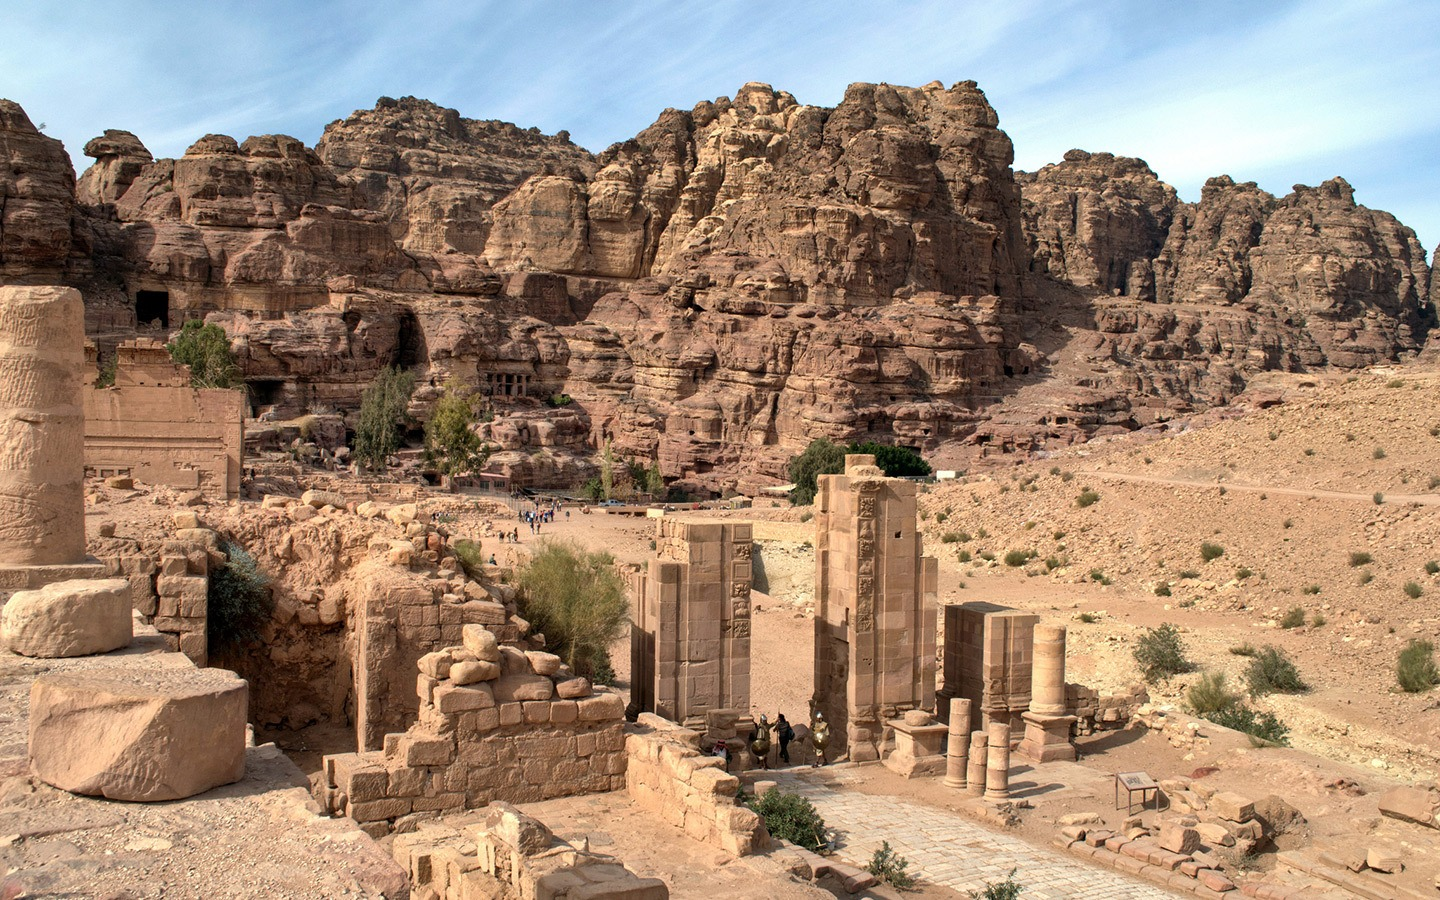 The Colonnaded Street in Petra, Jordan